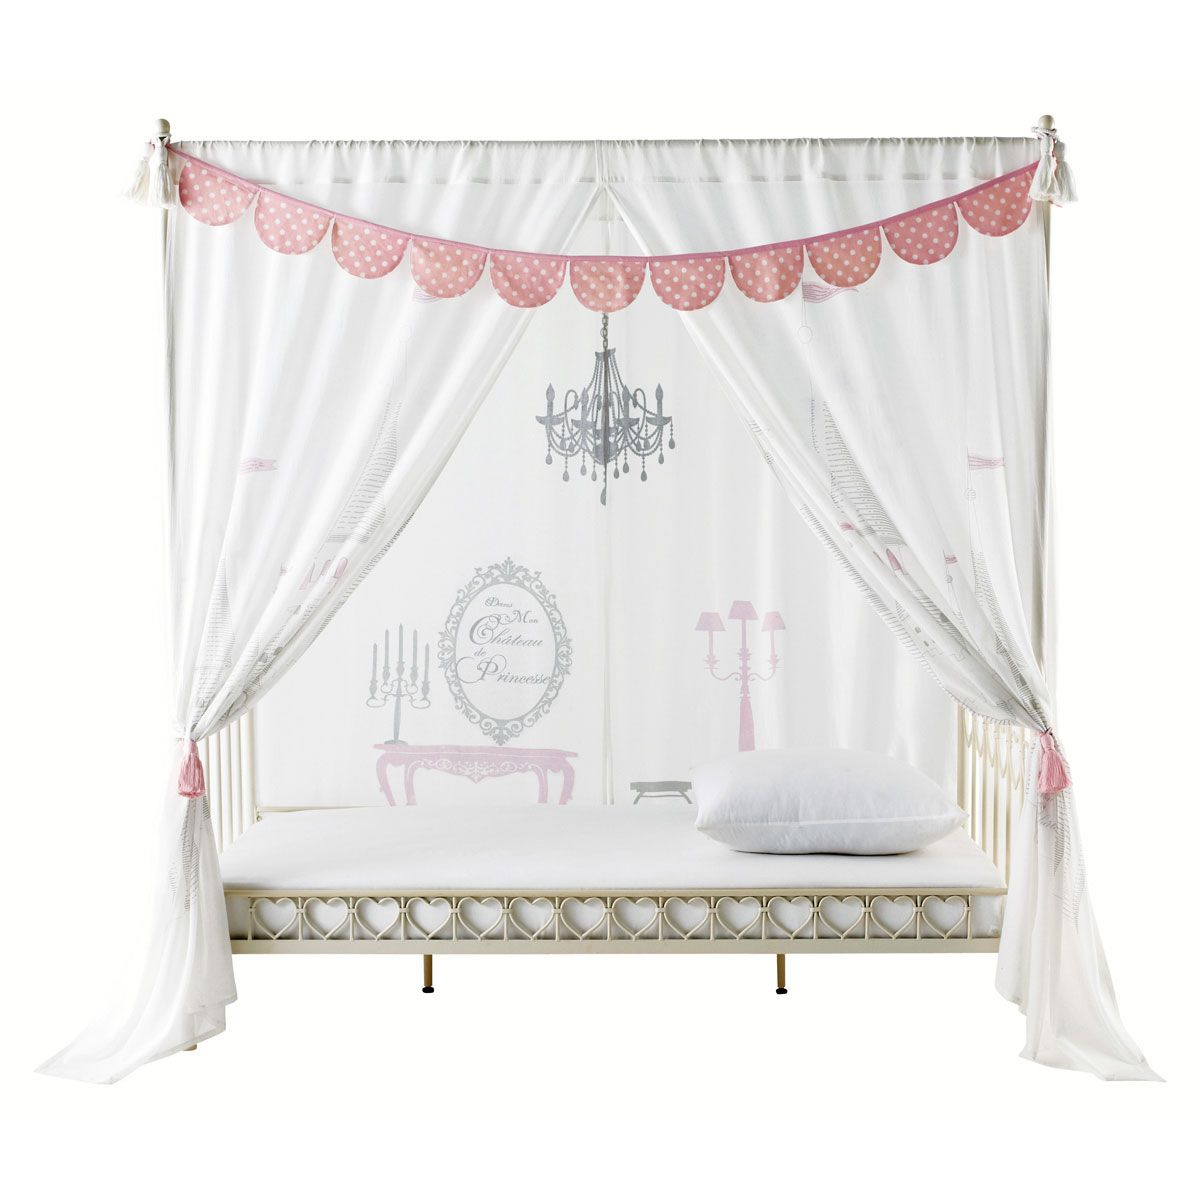 rideau enfant lit baldaquin princesse chambre fille. Black Bedroom Furniture Sets. Home Design Ideas